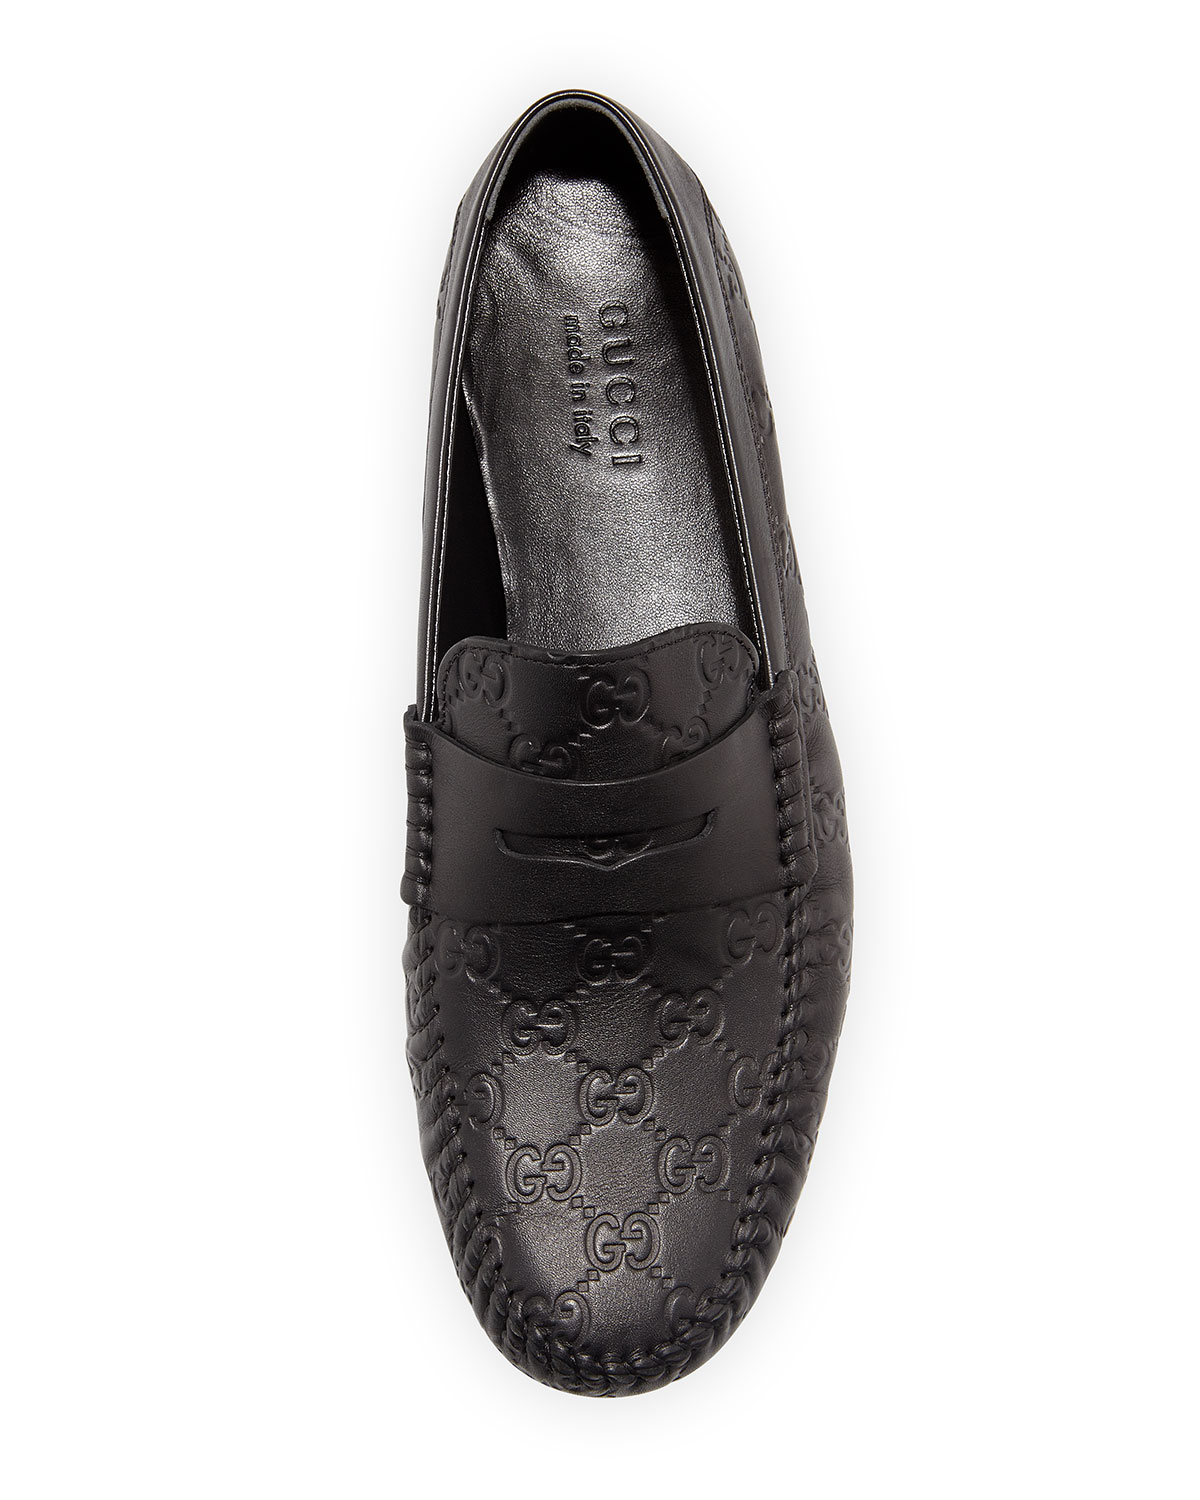 8c1c557aa1a Lyst - Gucci Leather Driving Shoes in Black for Men